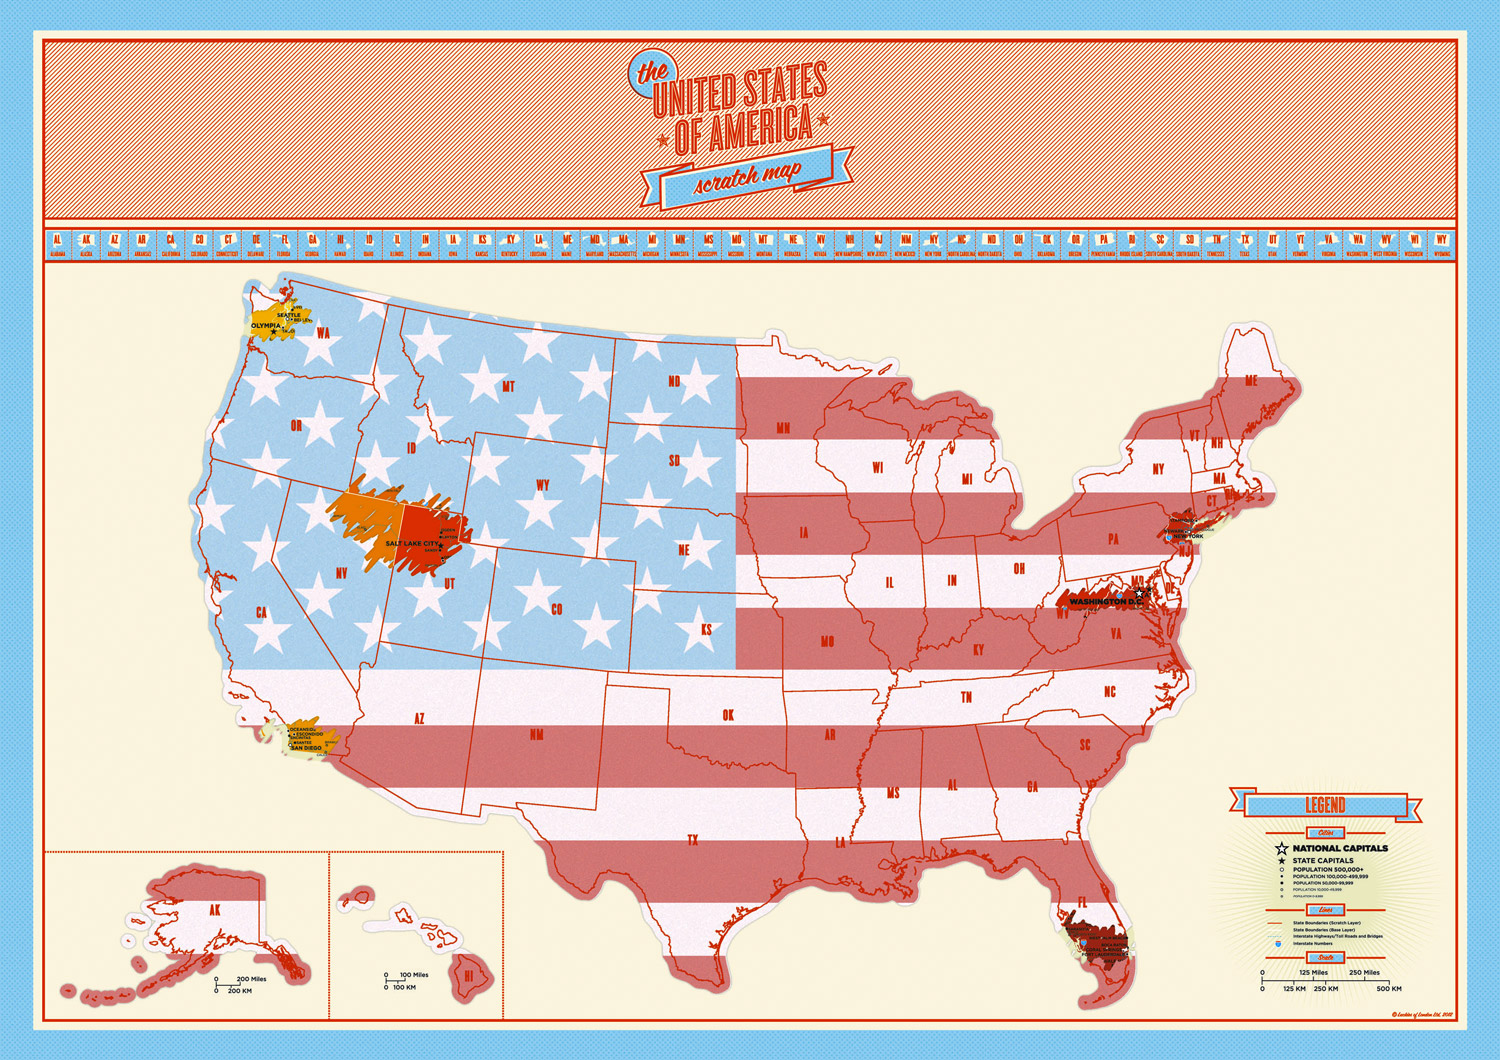 USA Scratch Map Track Your Travels With The Large Scratchoff Map - Images for map of usa